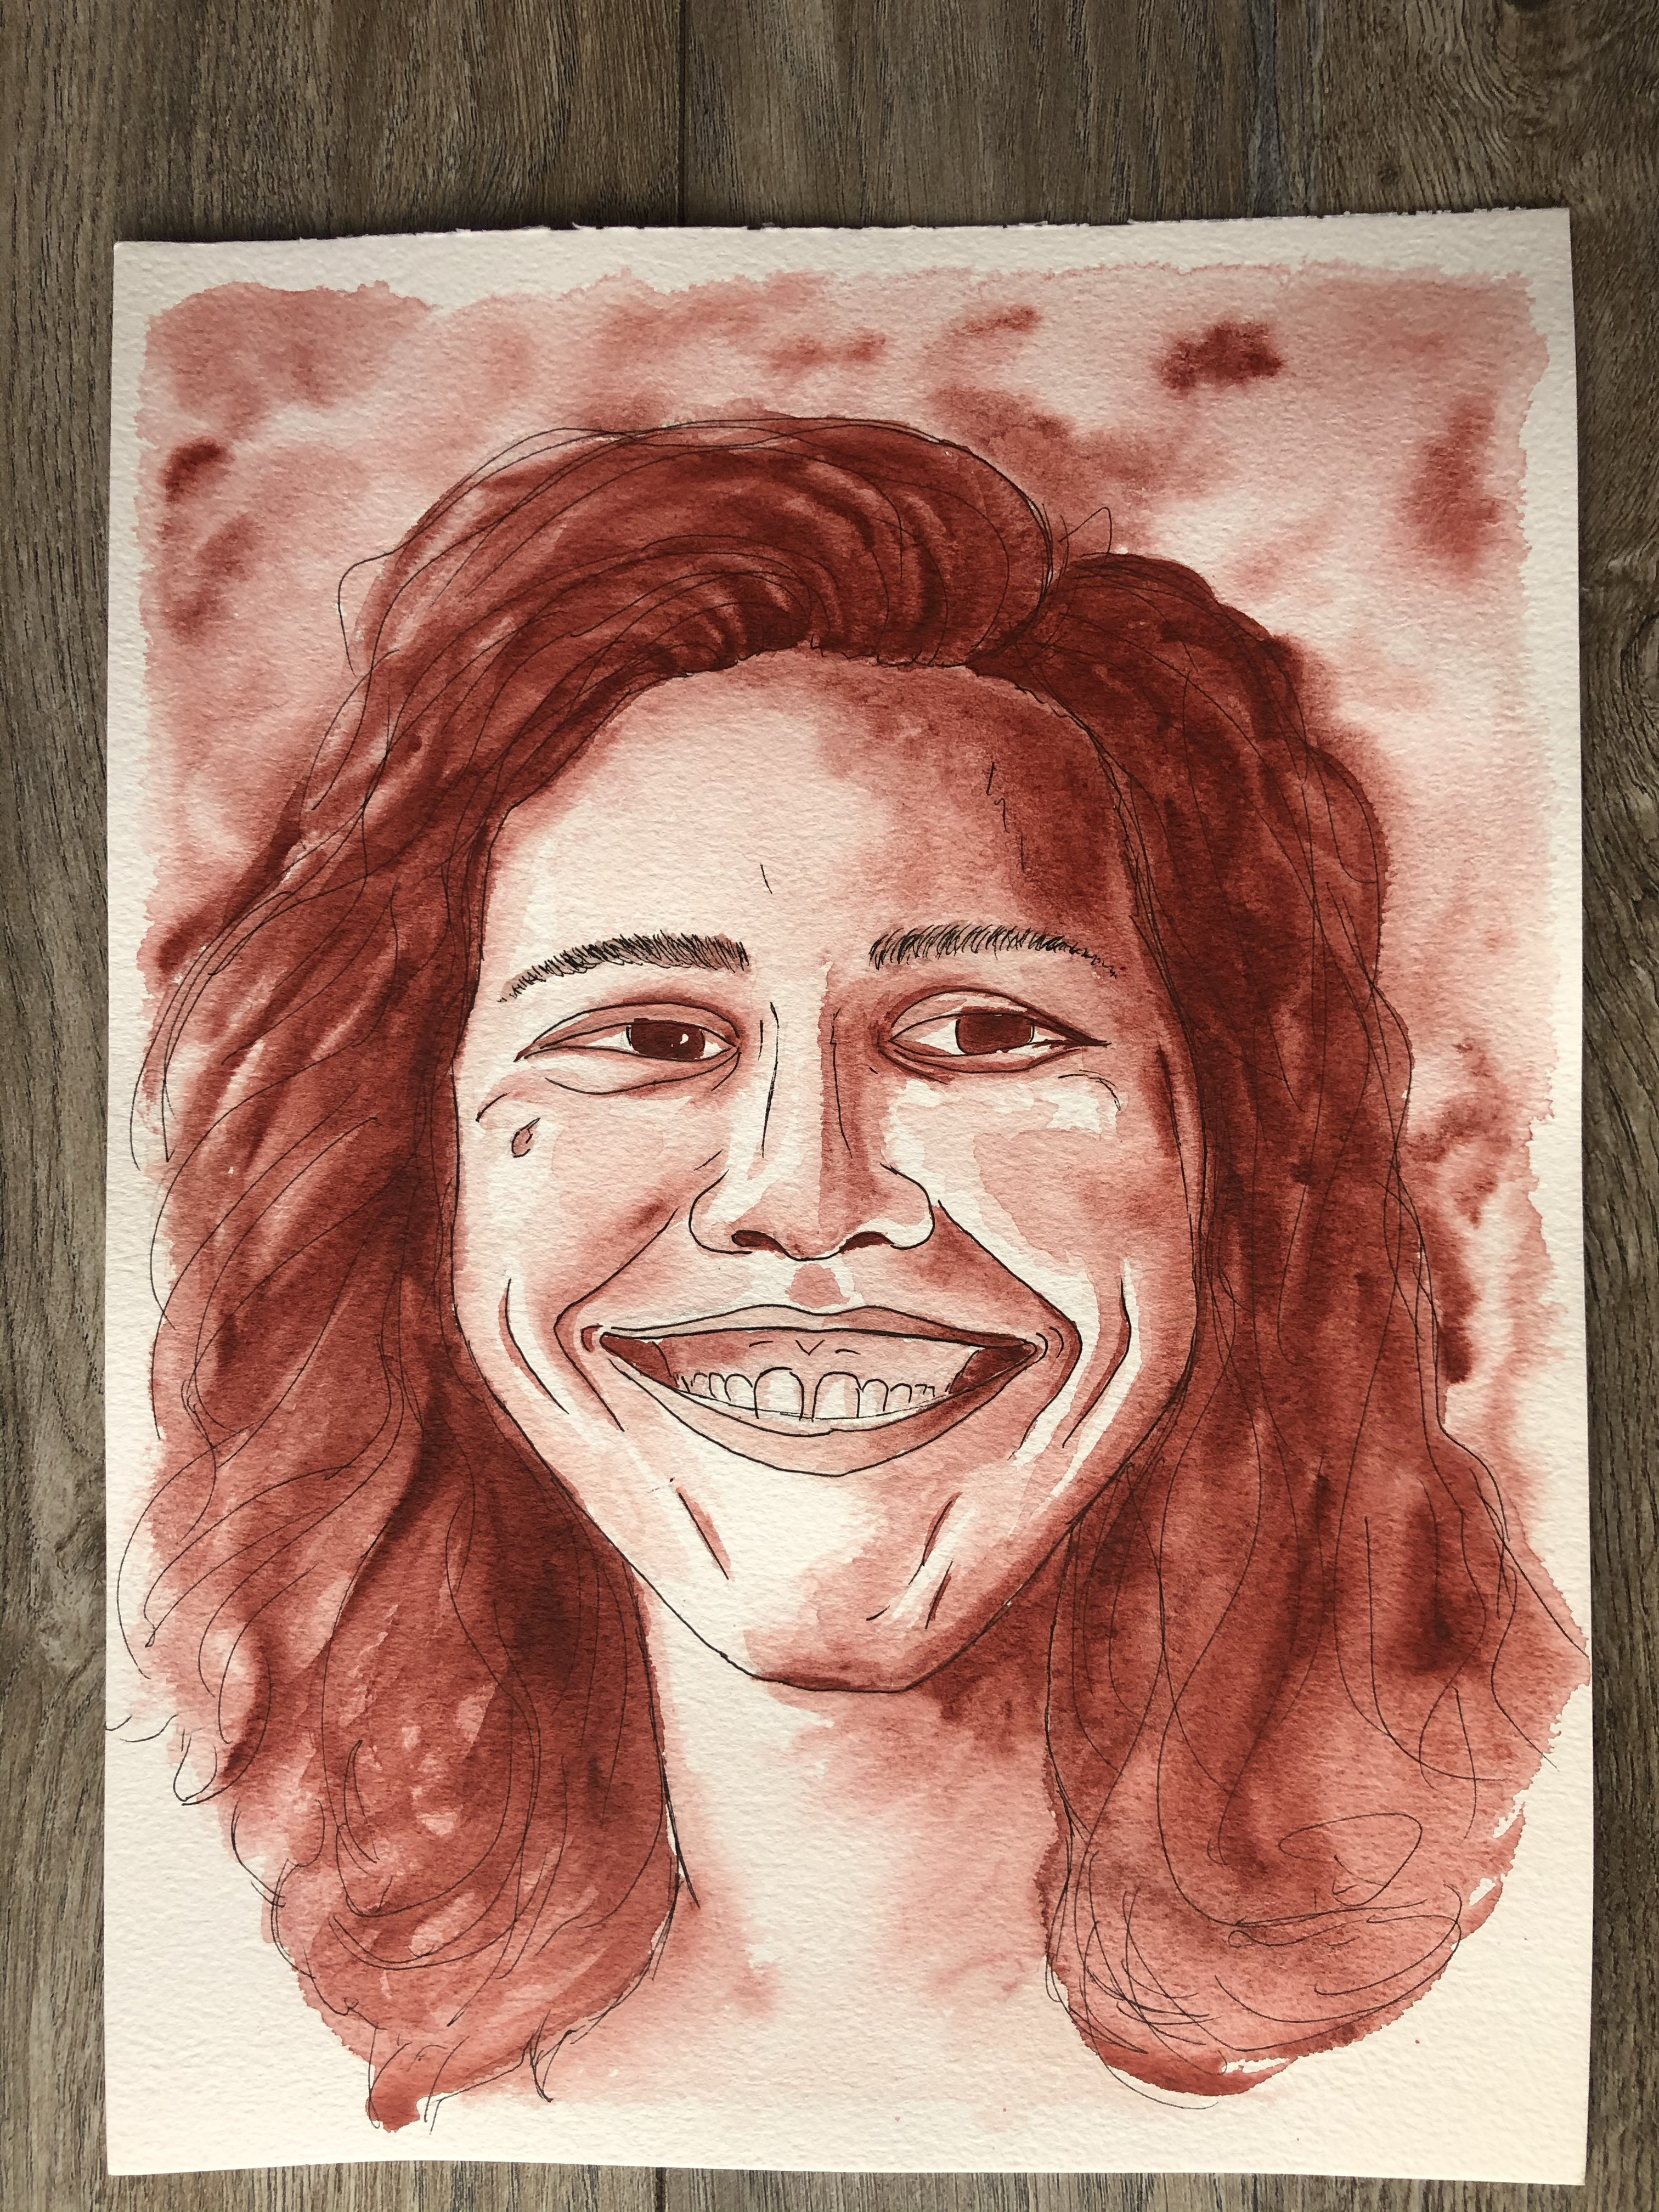 Watercolor portrait of a woman smiling.